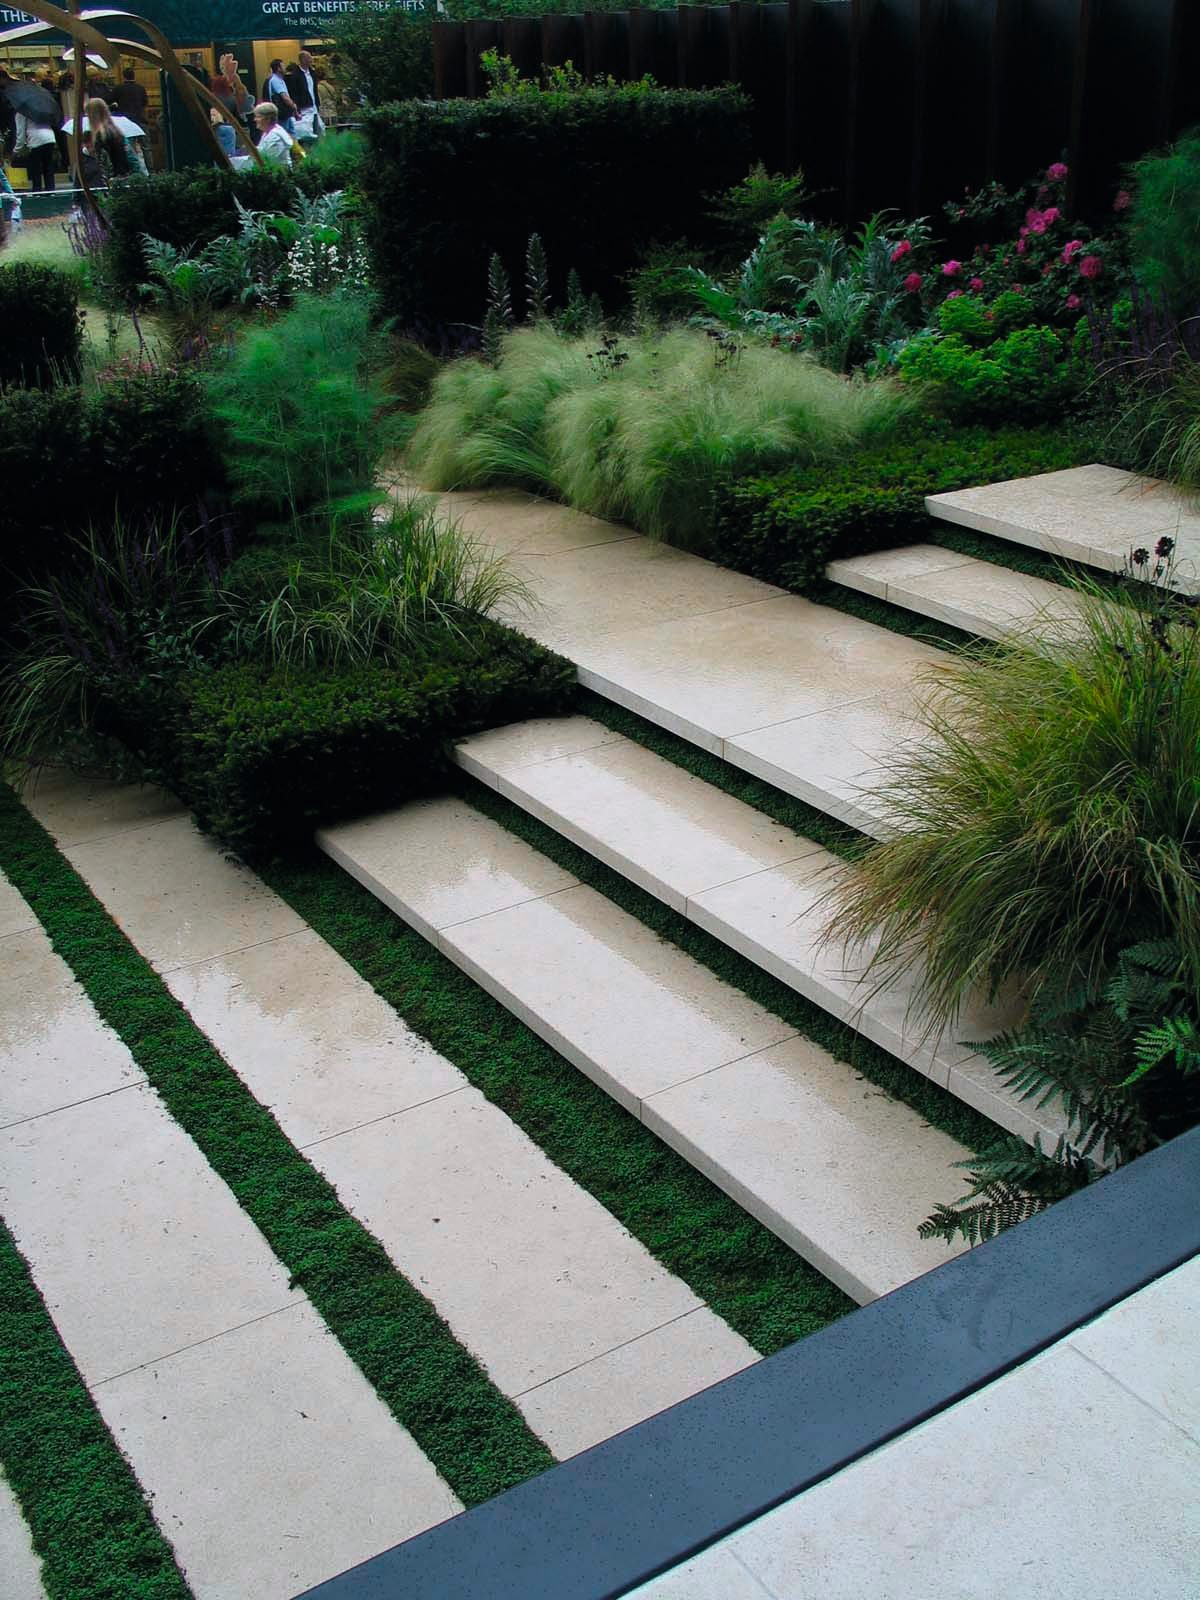 A General Rule Of Thumb For Garden Steps Is A 15cm Maximum Riser And 30cm  Minimum Tread Depth. This Ratio Produces A More Relaxed Angle Of Ascent Or  Descent ...